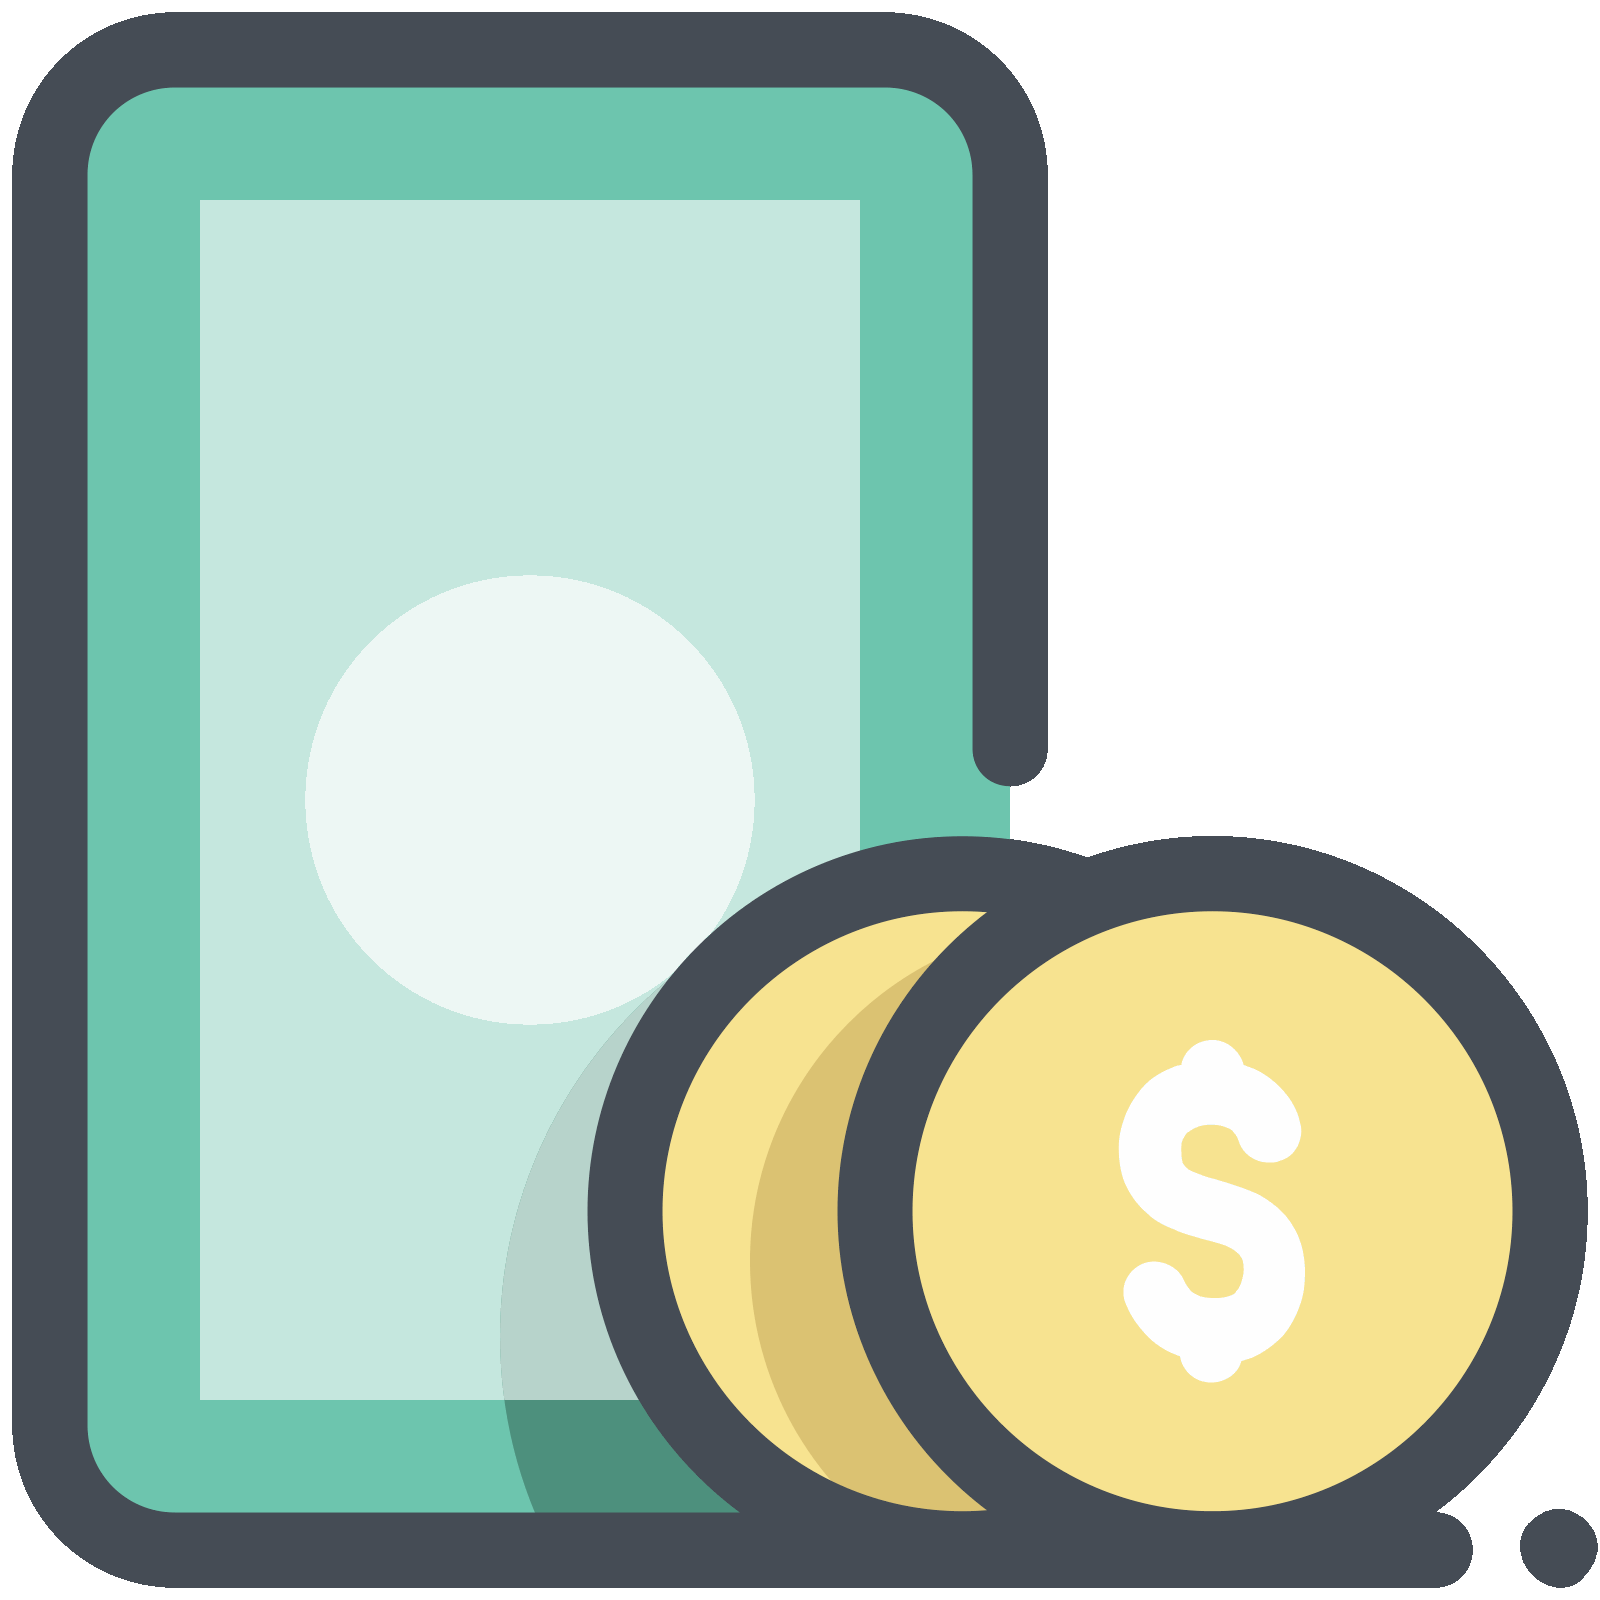 Finance clipart coin notes. Ic ne and coins